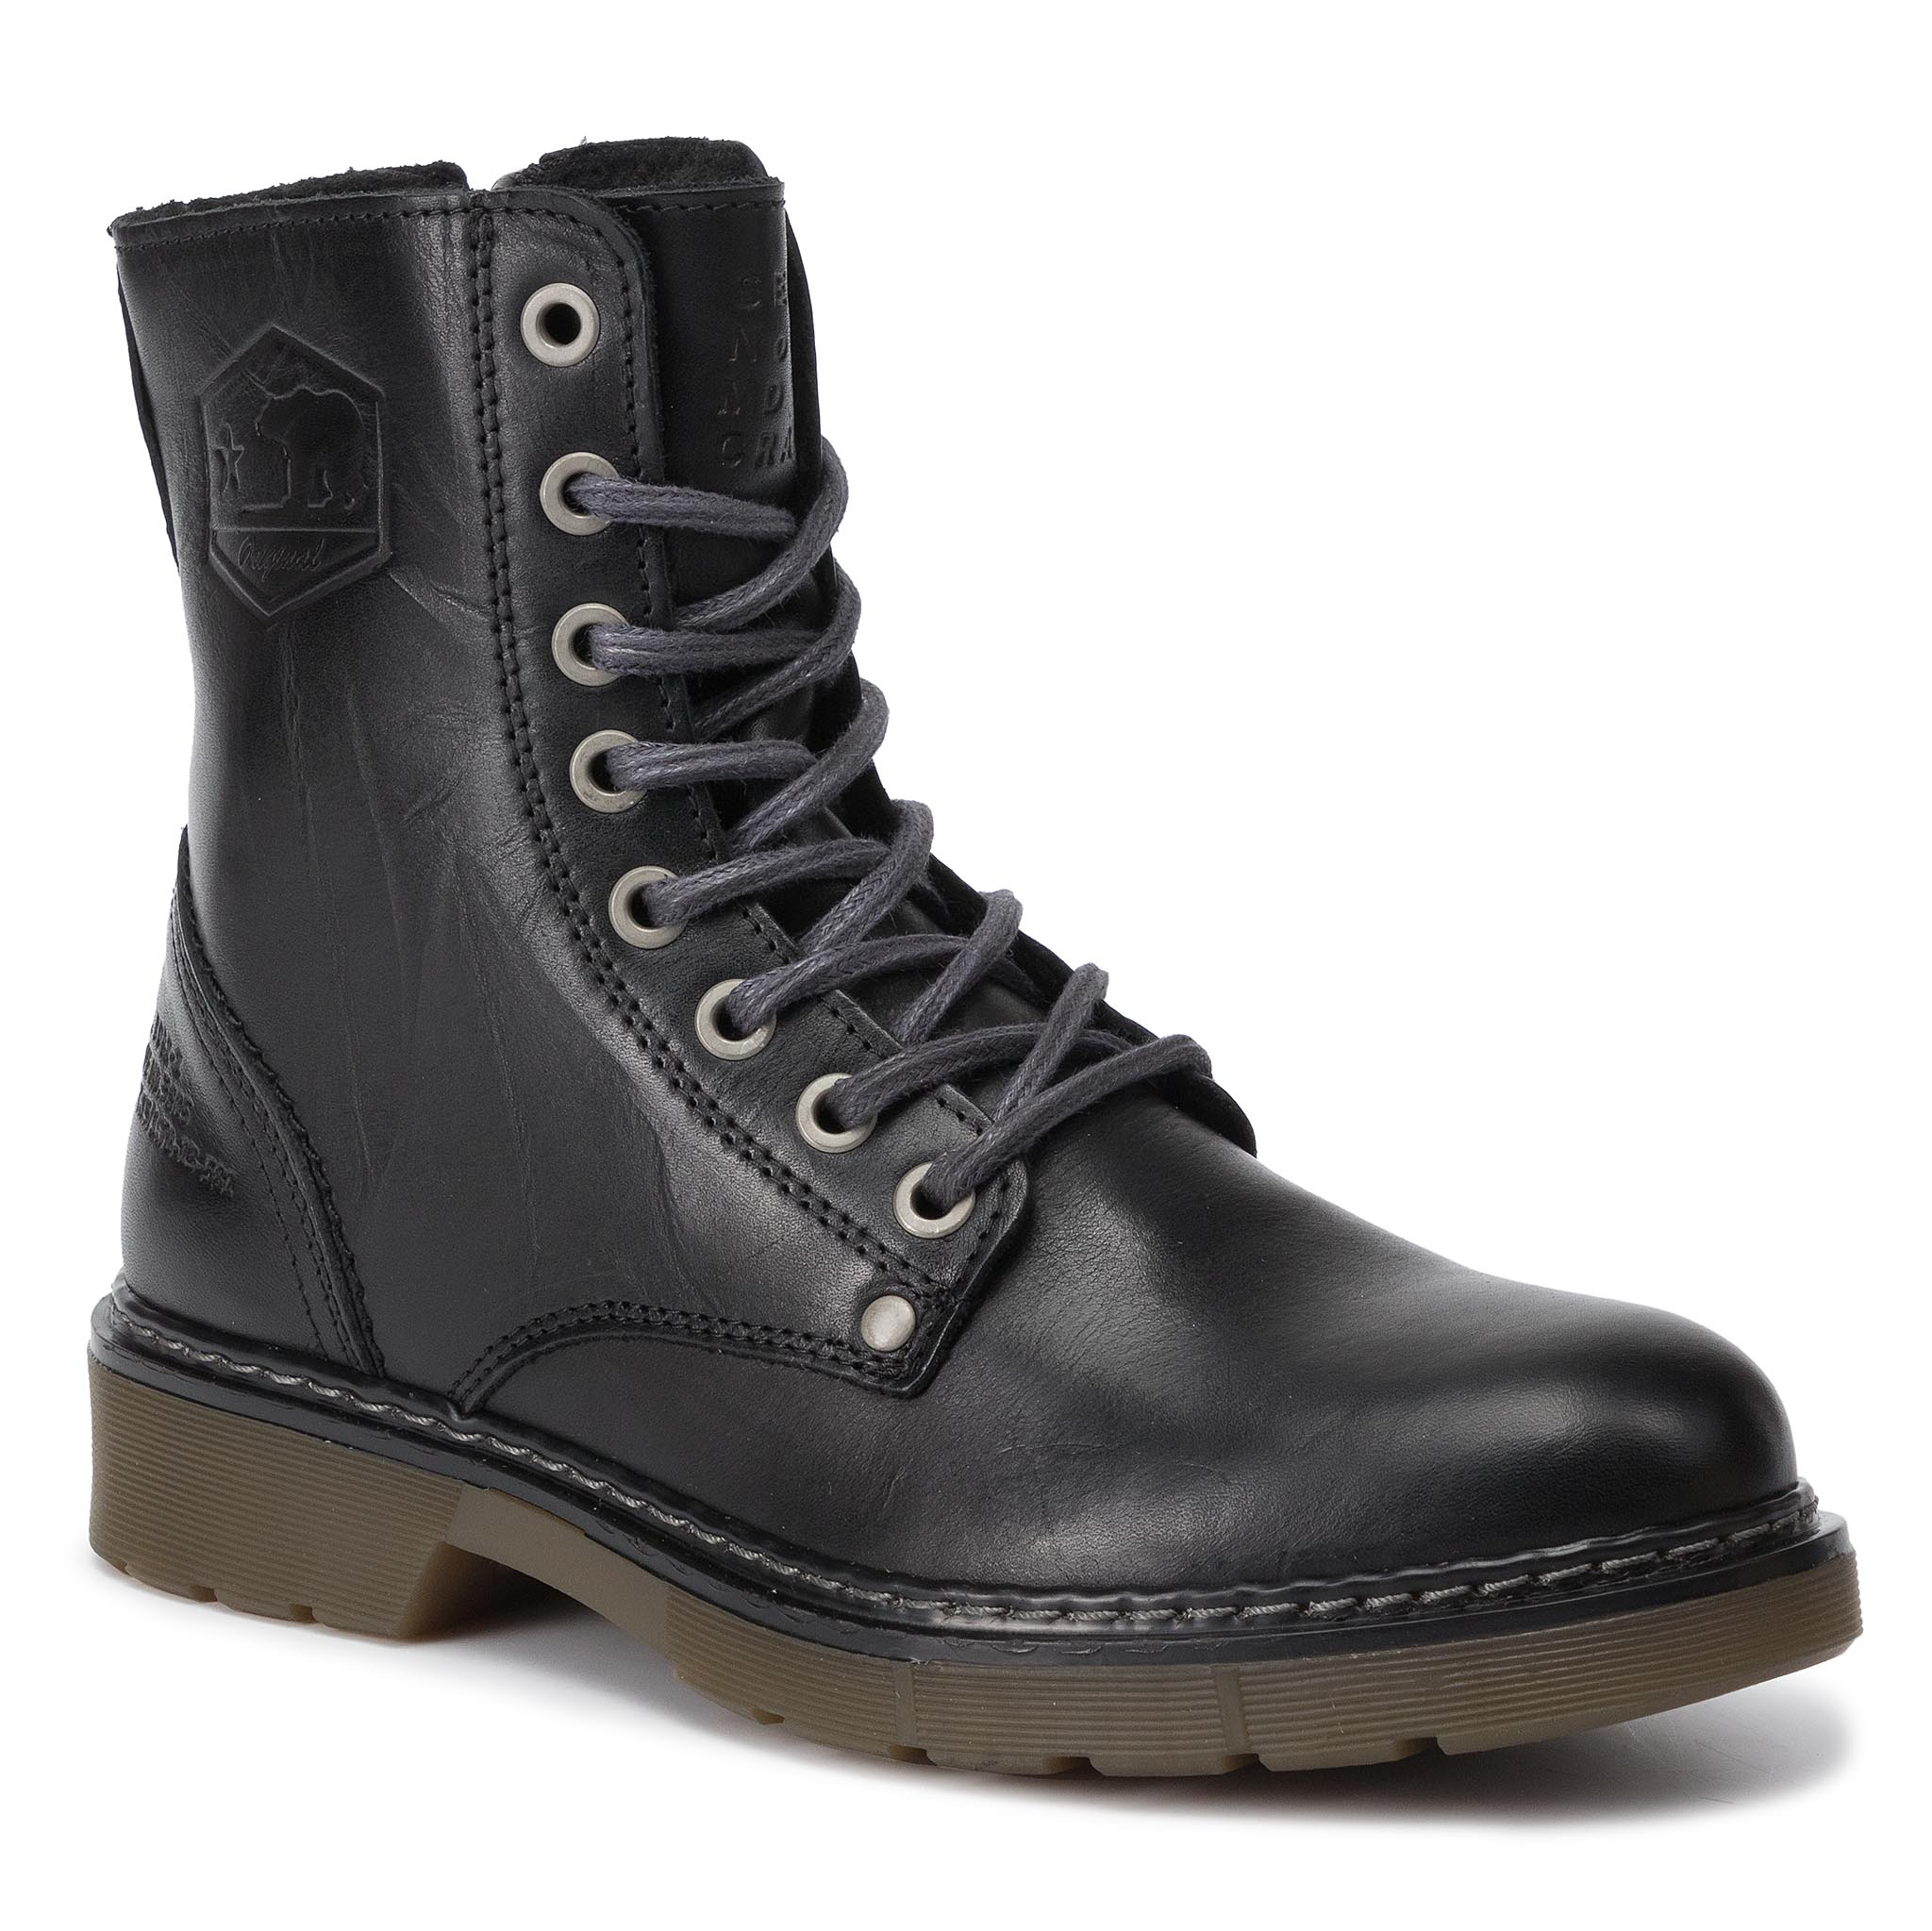 Trappers BULLBOXER - 875M82701 2495